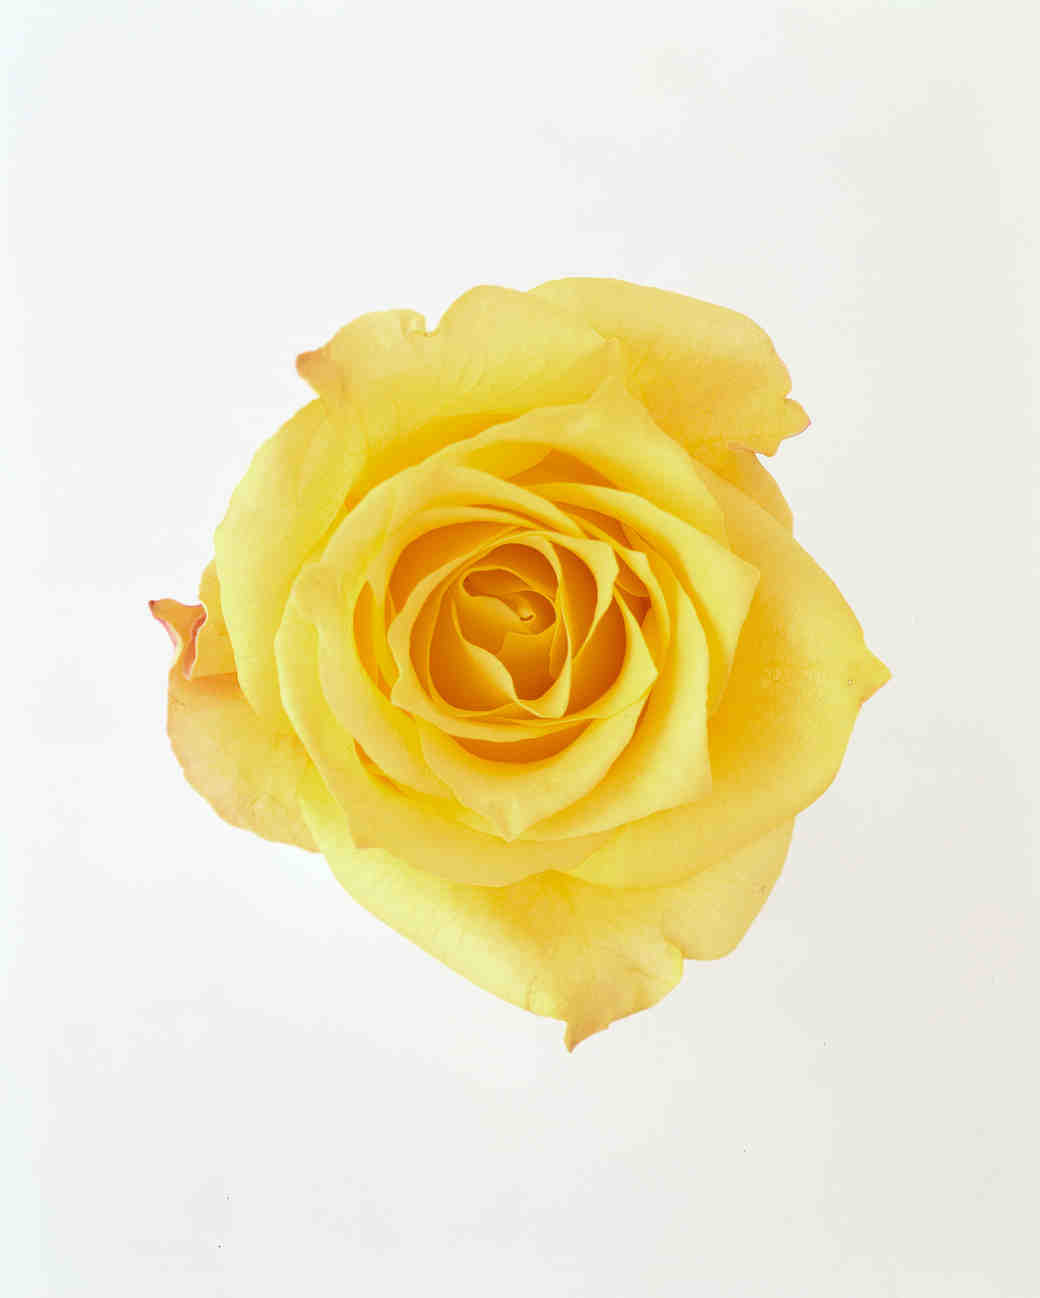 rose-color-meanings-yellow-a98432-0715.jpg